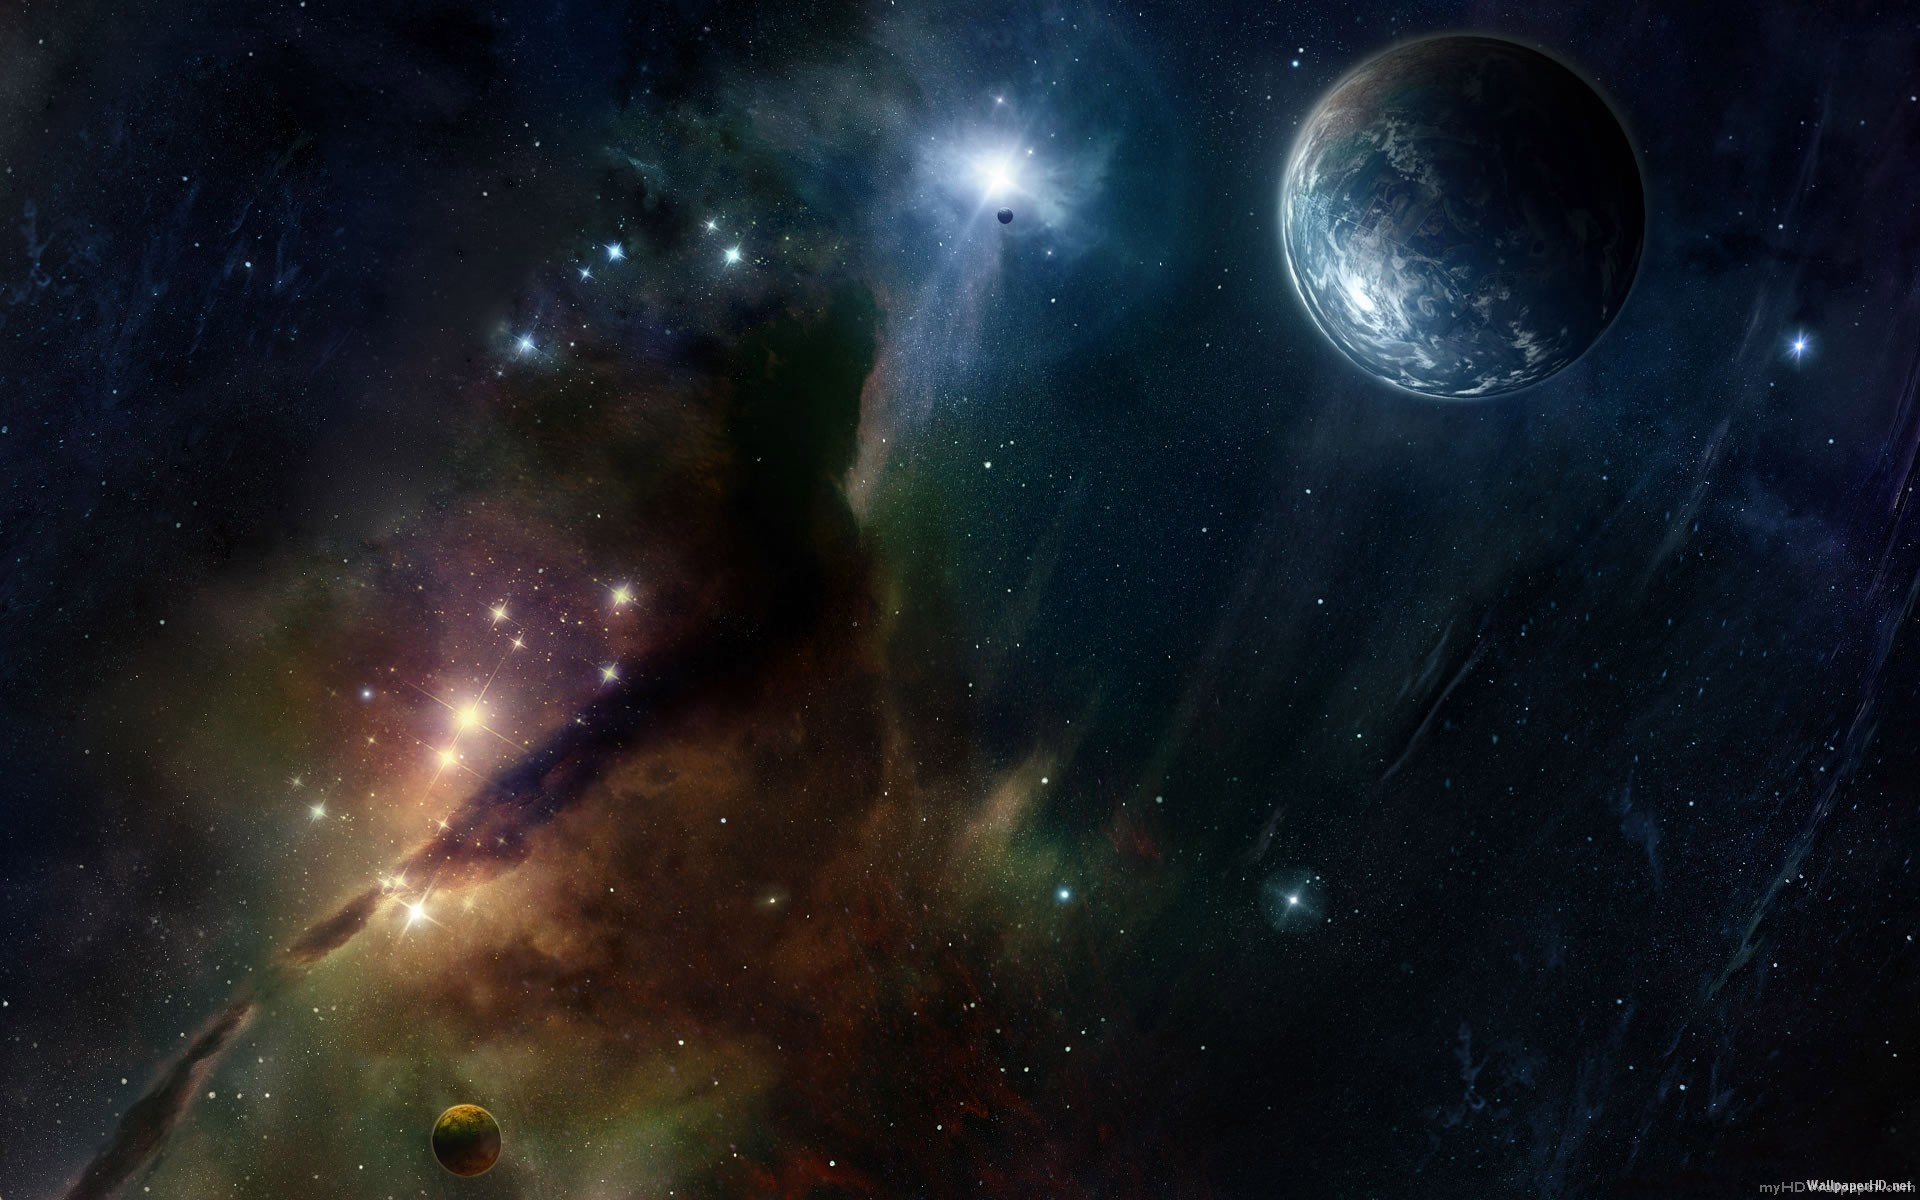 hd space wallpaper hd space wallpaper 1920x1200